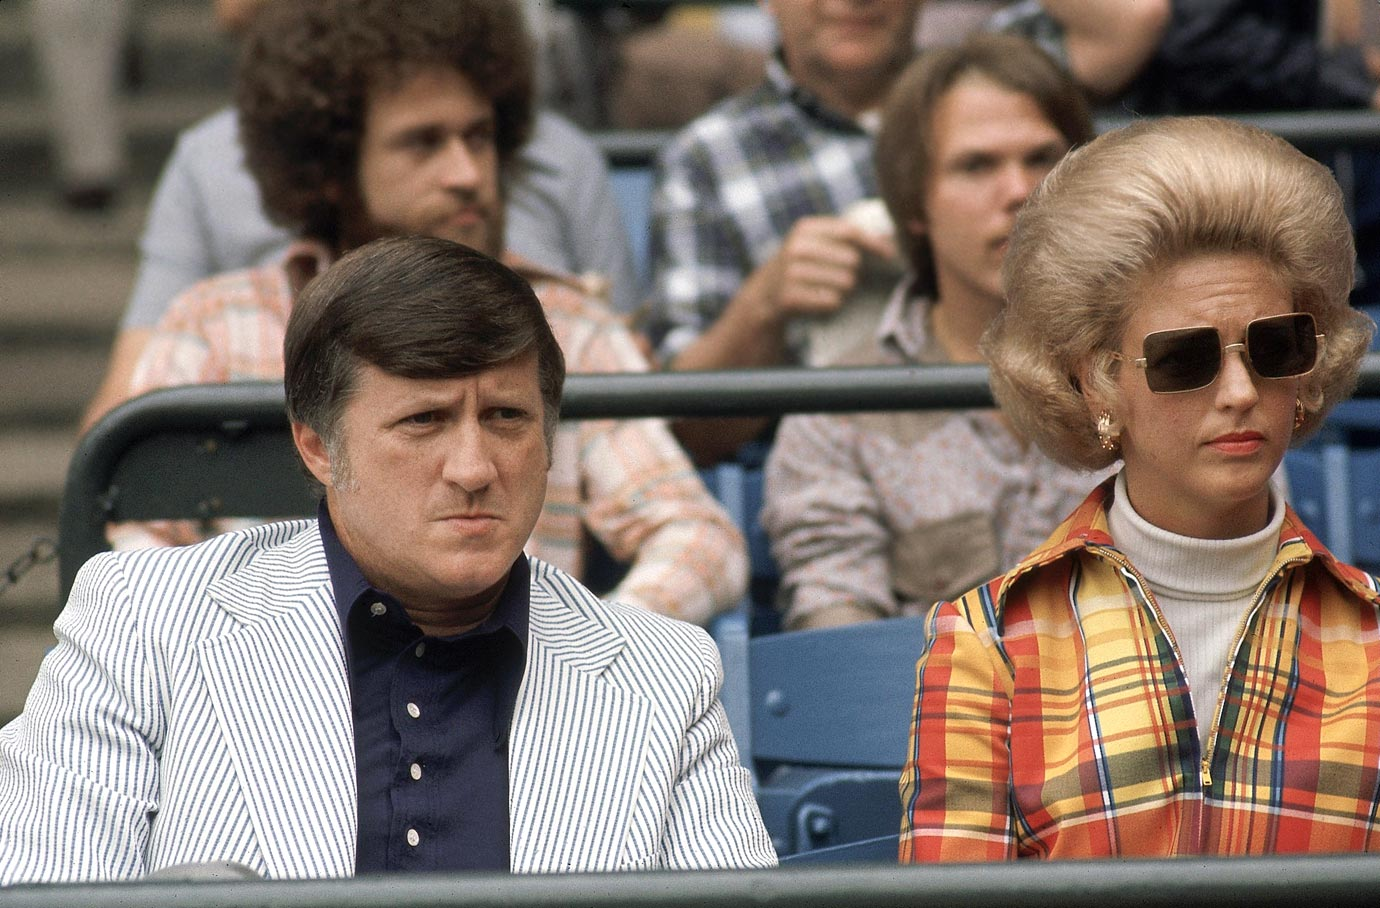 George Steinbrenner and his wife Joan sit in the stands watching Game 2 of a doubleheader between the New York Yankees and the Detroit Tigers on June 24, 1973 at Yankee Stadium in Bronx, N.Y.